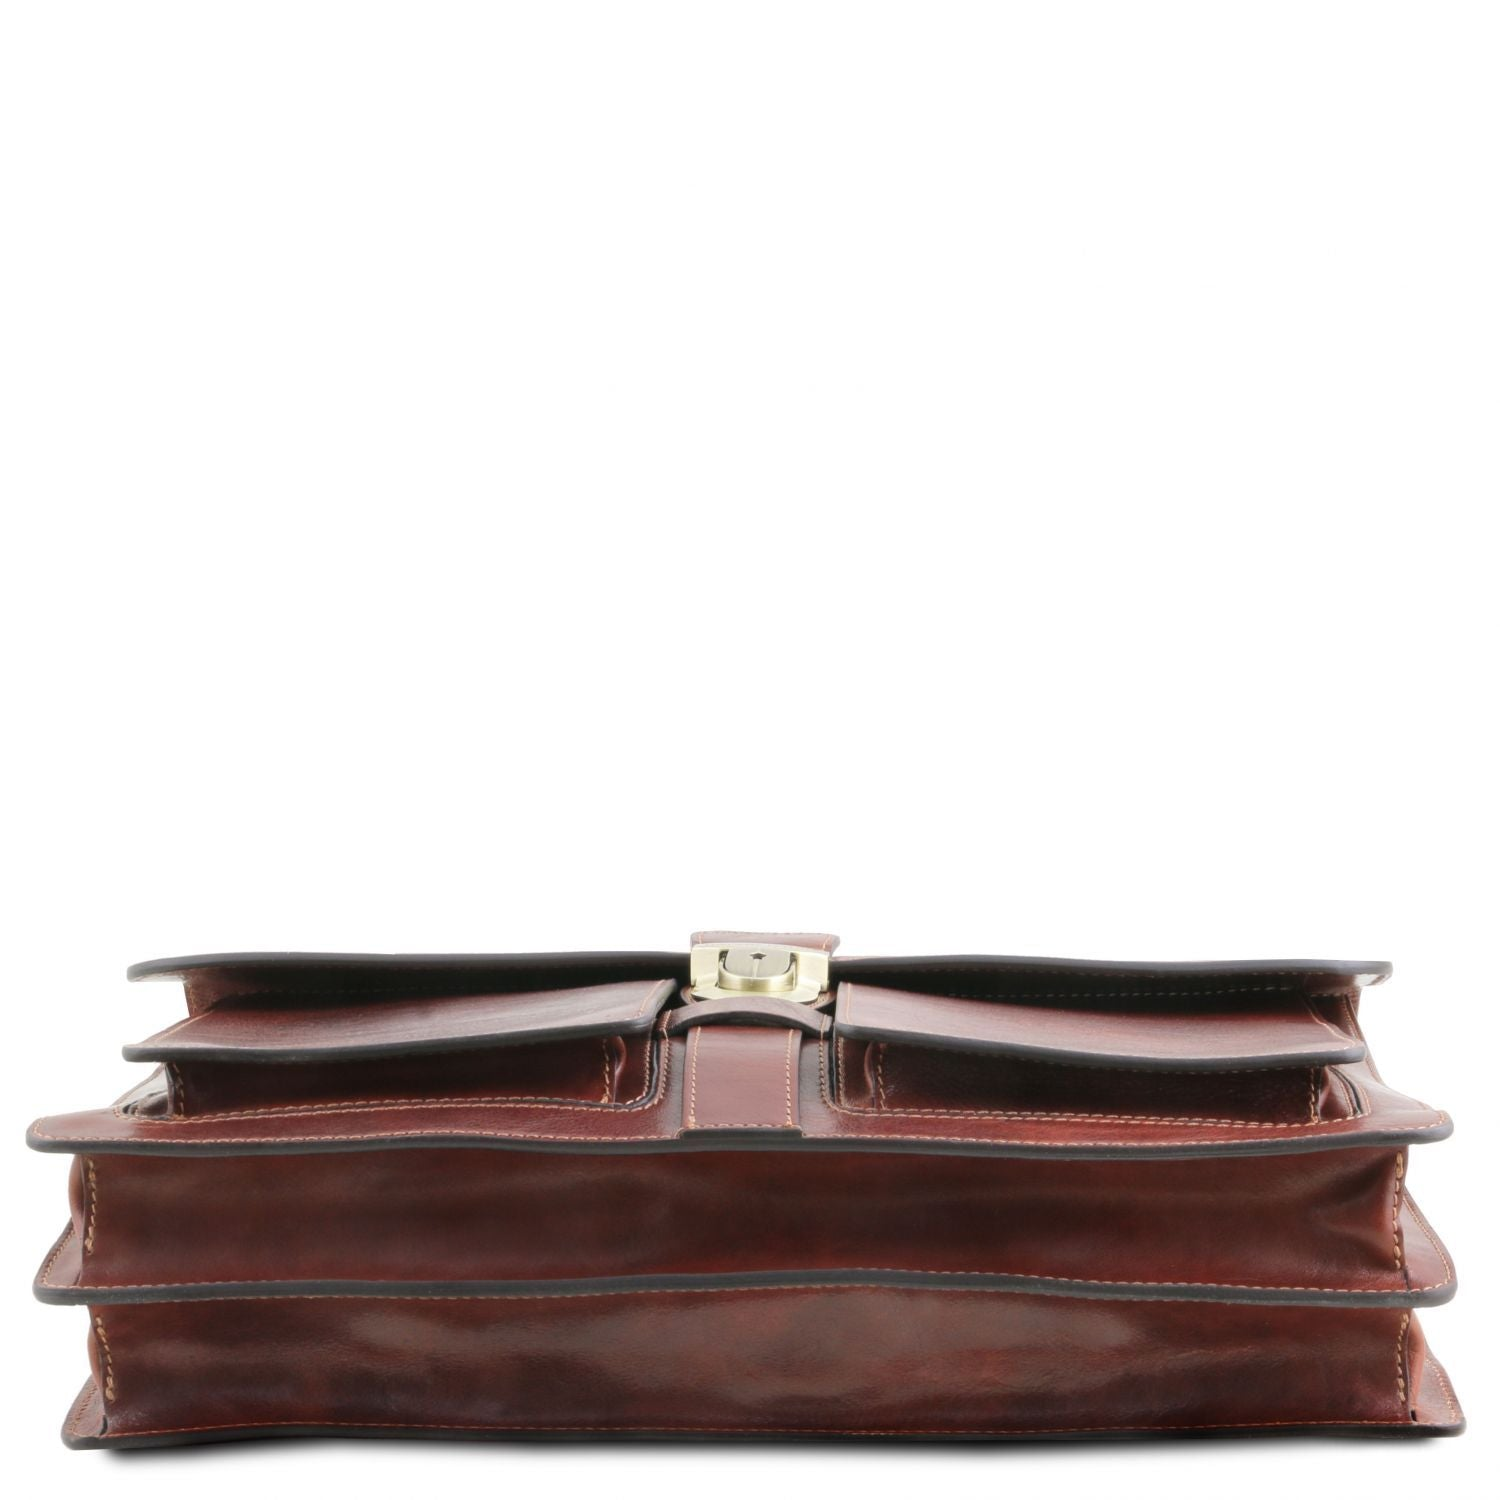 Assisi - Leather briefcase 3 compartments (TL141825) - Leather briefcases | DILUSSOBAGS